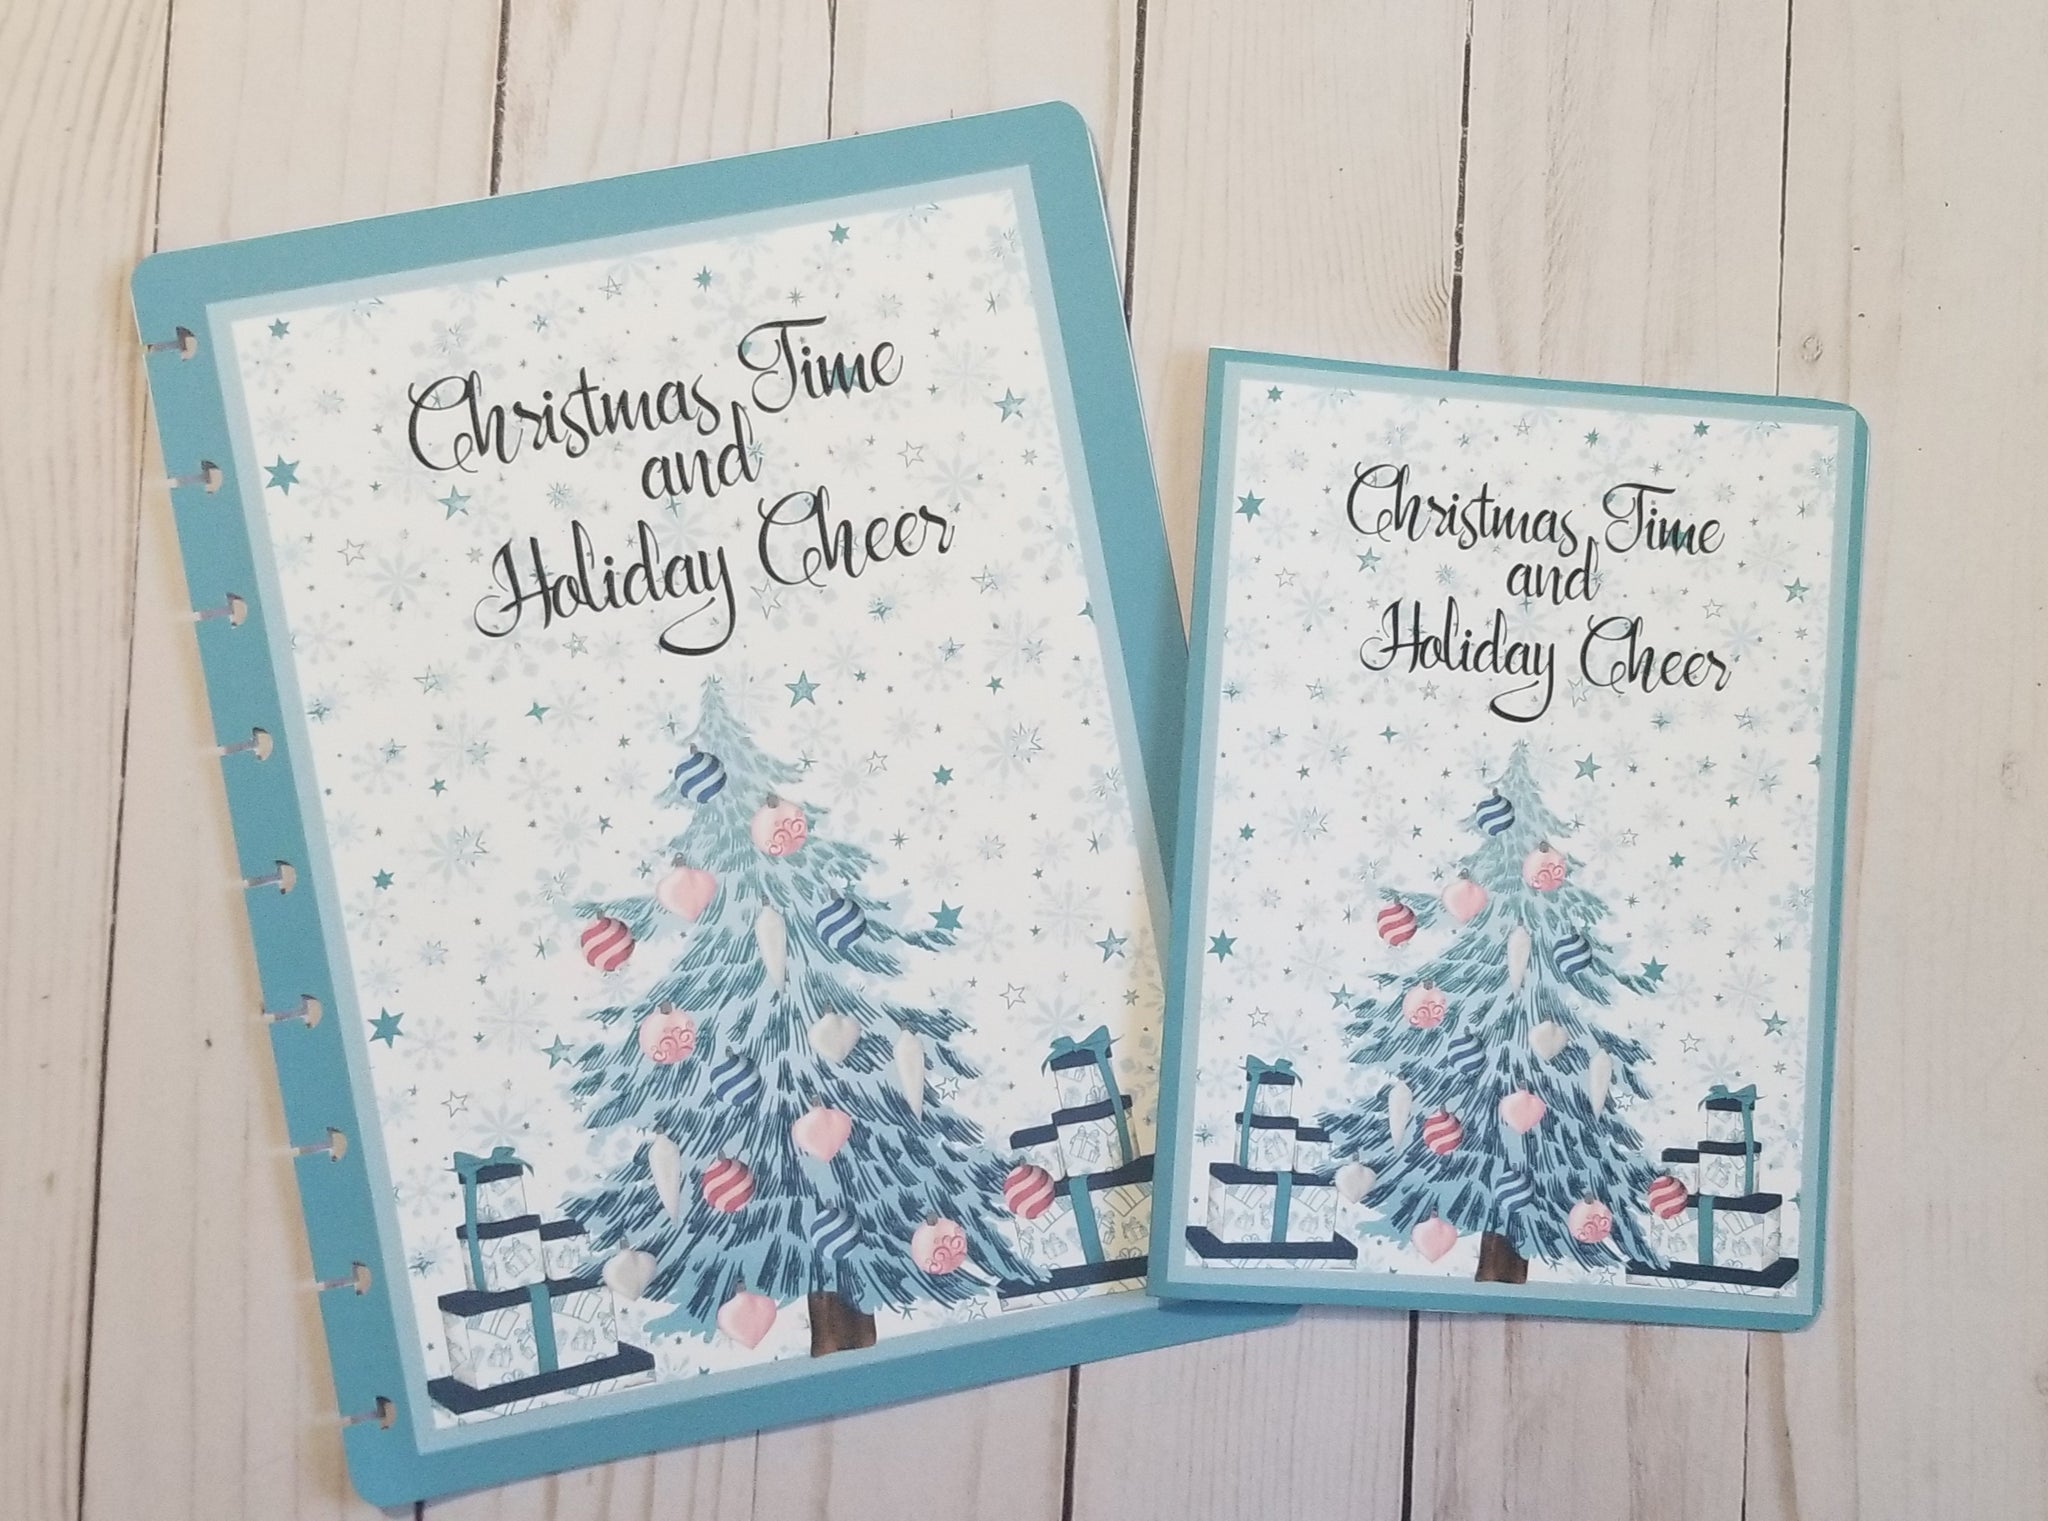 Christmas Tree Dashboard / Dashboard / TN Dashboard / Traveler's Notebook Dashboard  / TN Insert / Planner Dashboard / Planner Insert